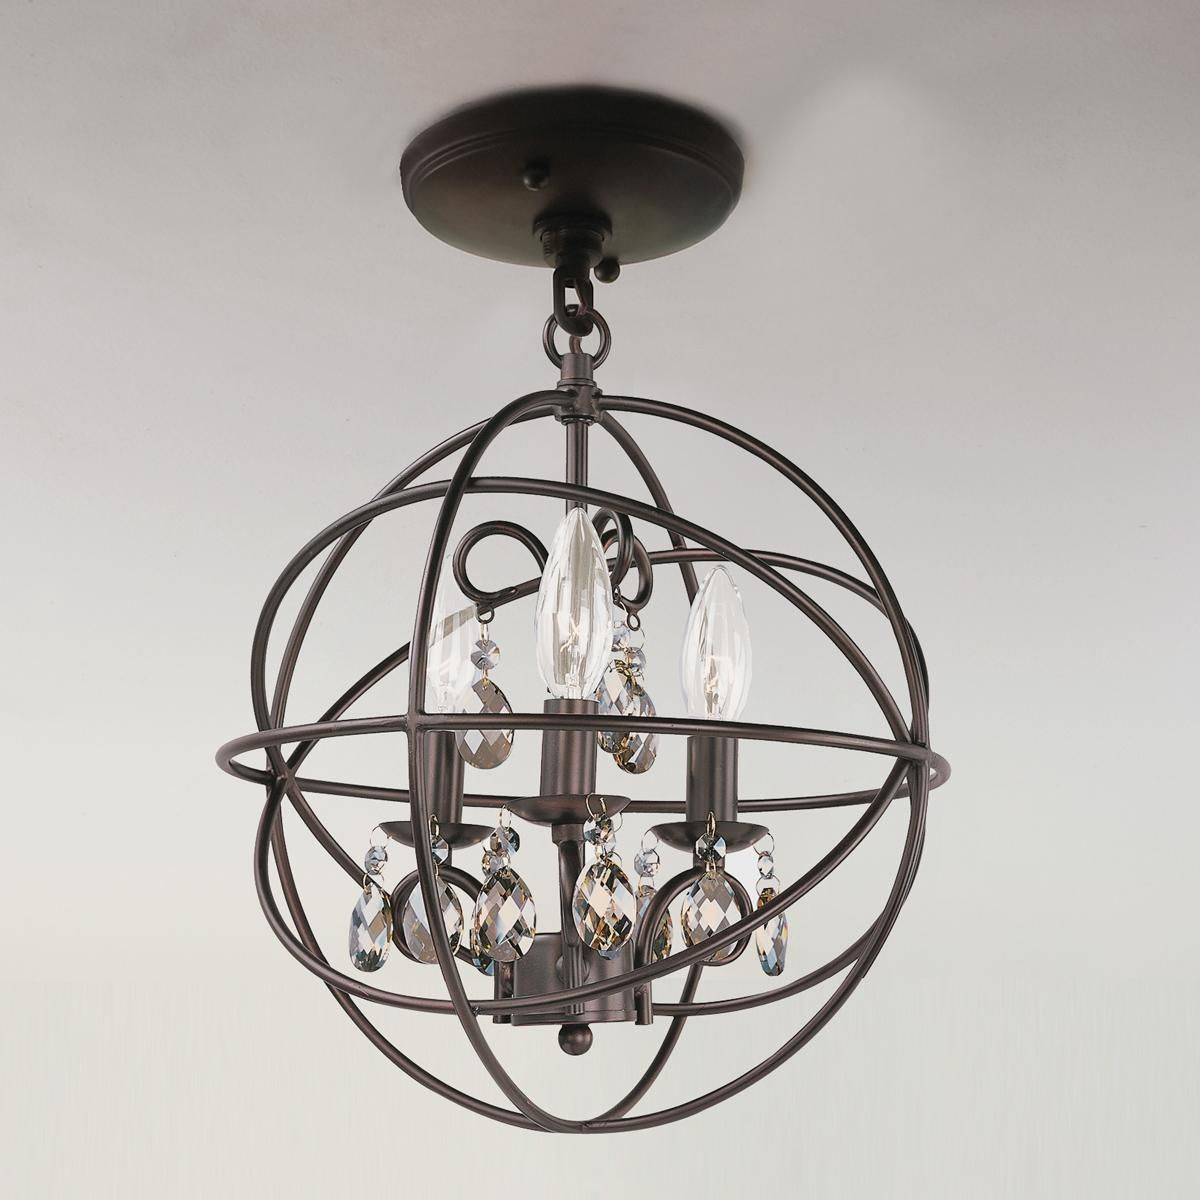 Metal Cage Globe And Crystal Mini Chandelier | Master Pertaining To La Sarre 3 Light Globe Chandeliers (View 23 of 30)